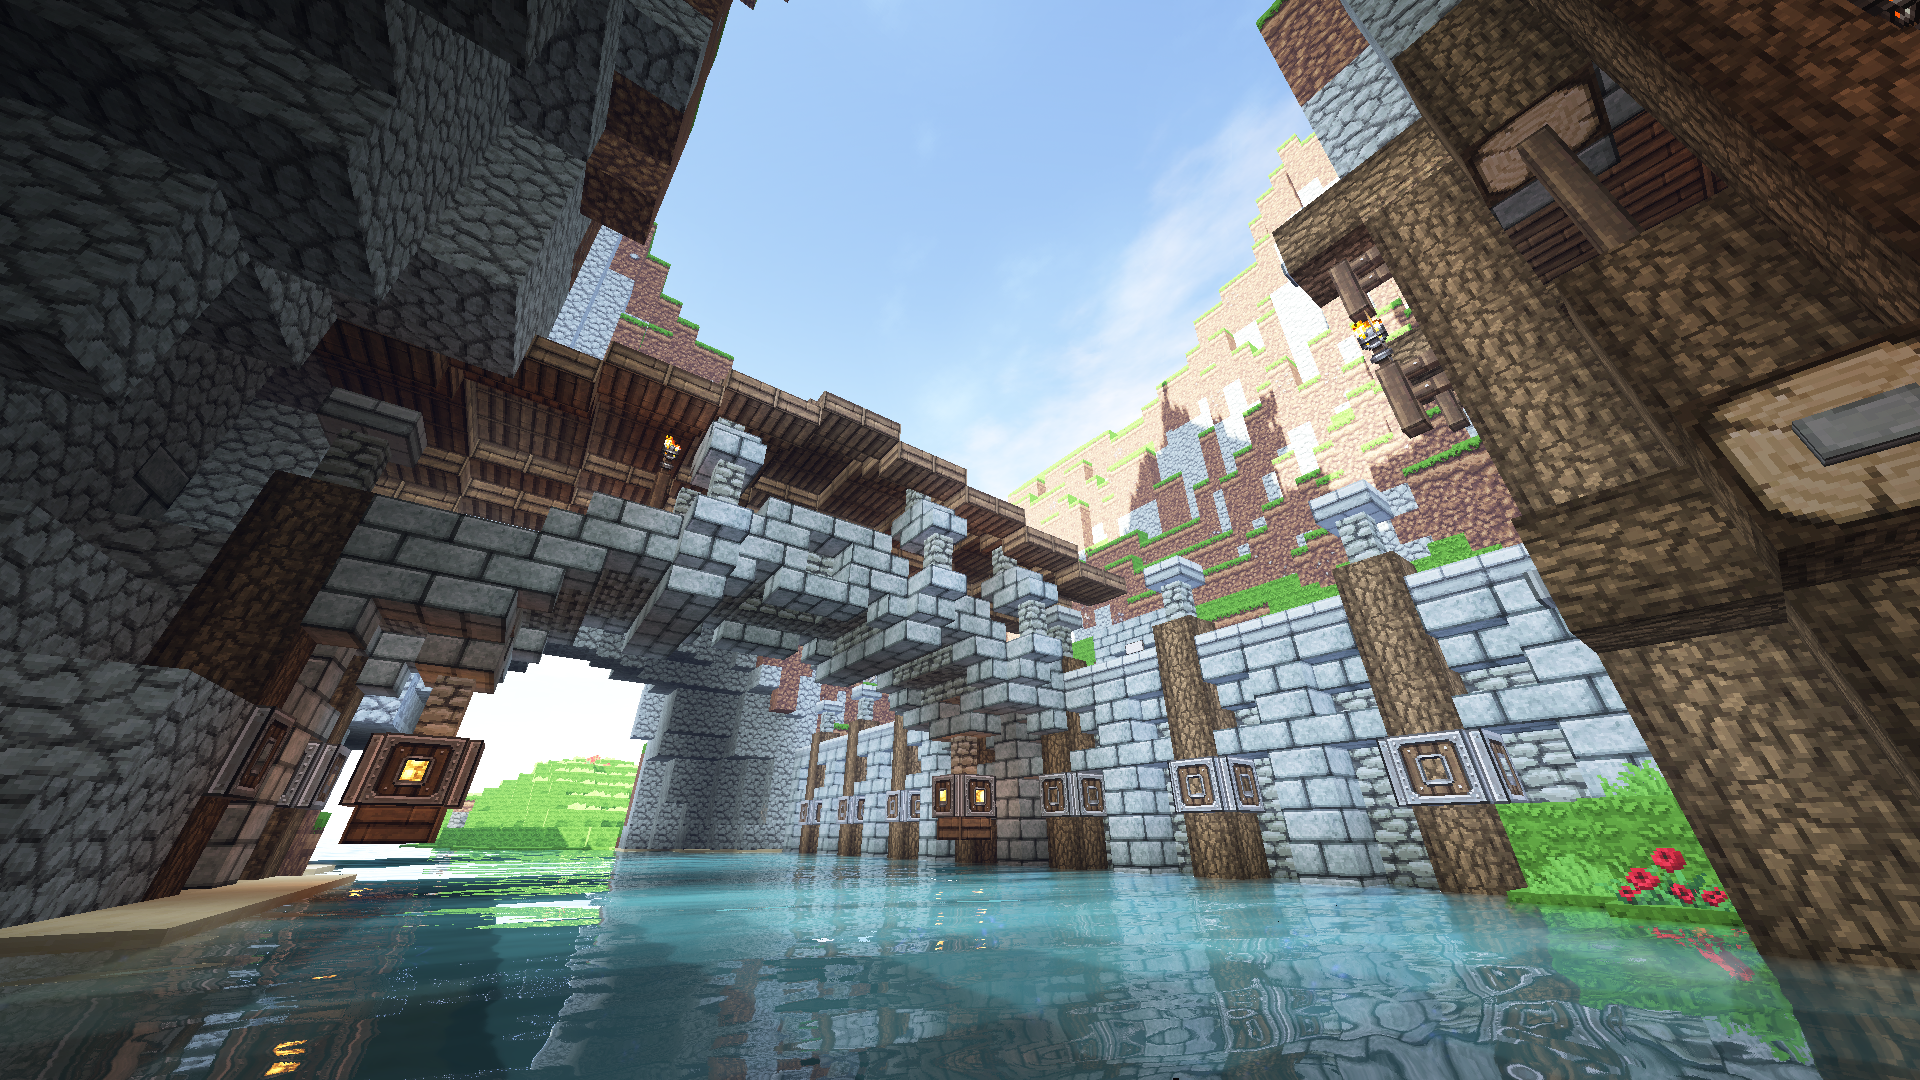 ... Small Bridge   Minecraft Build By ChrisTurboEx